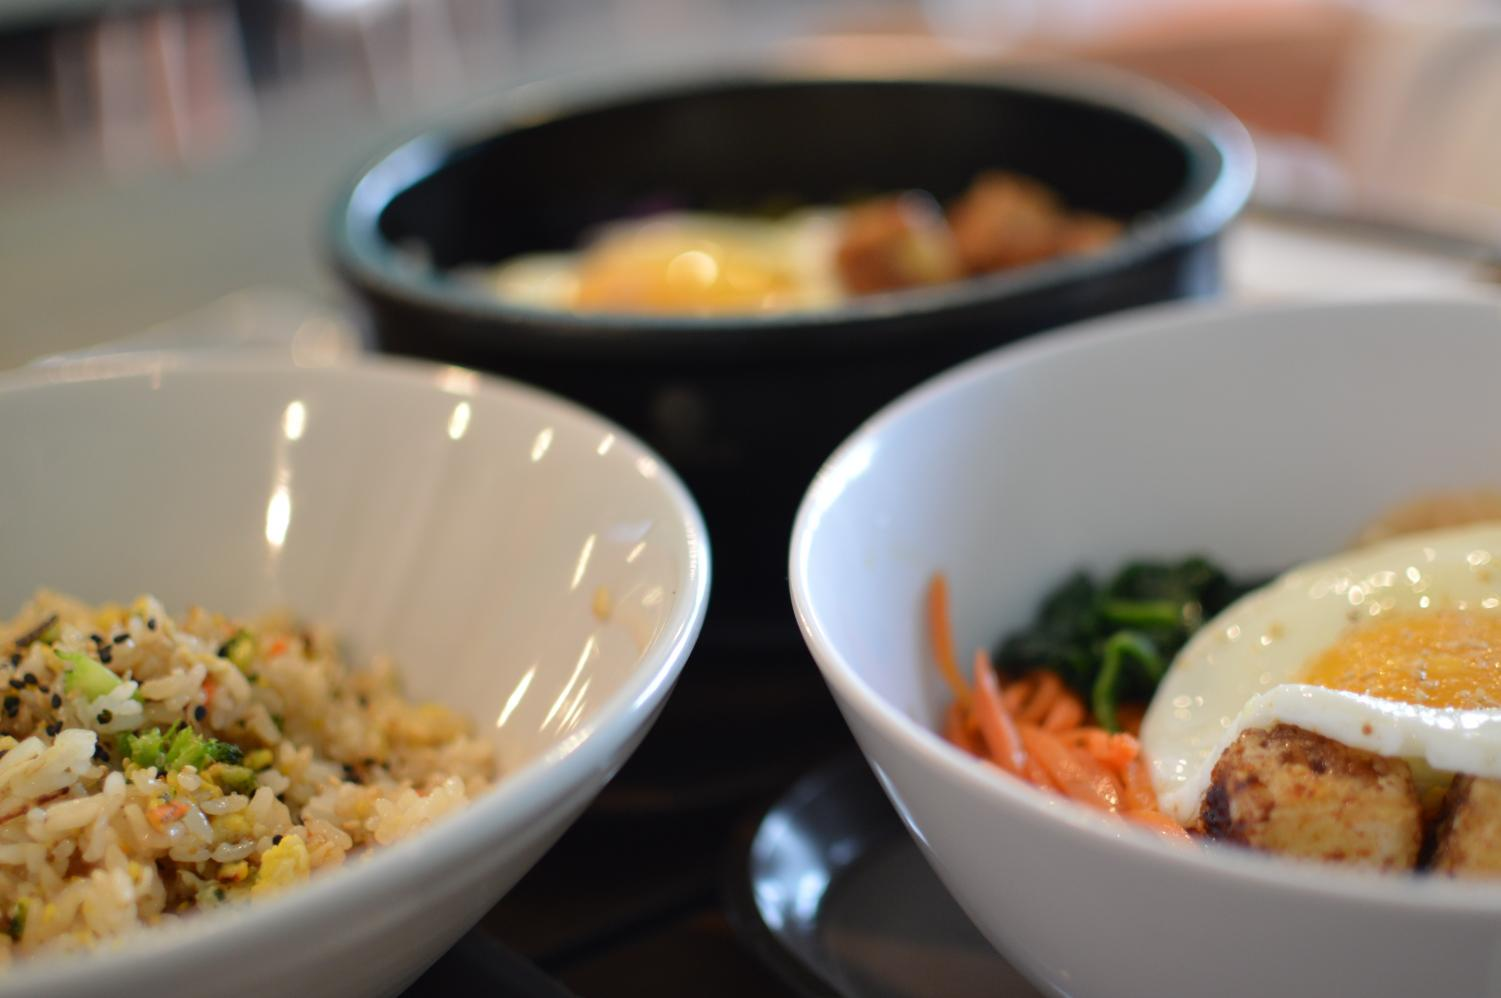 The dolsot bibimbap, the regular bibimbap, and fried rice were so well seasoned. The dolsot bibimbap which is in the black bowl is actually a hot stone bowl that keeps your food warm the entire time that you eat. If you want to check out this restaurant, their hours are Tuesday-Saturday (11am-8: 30 pm) and Sunday (11am-3: 30 pm).